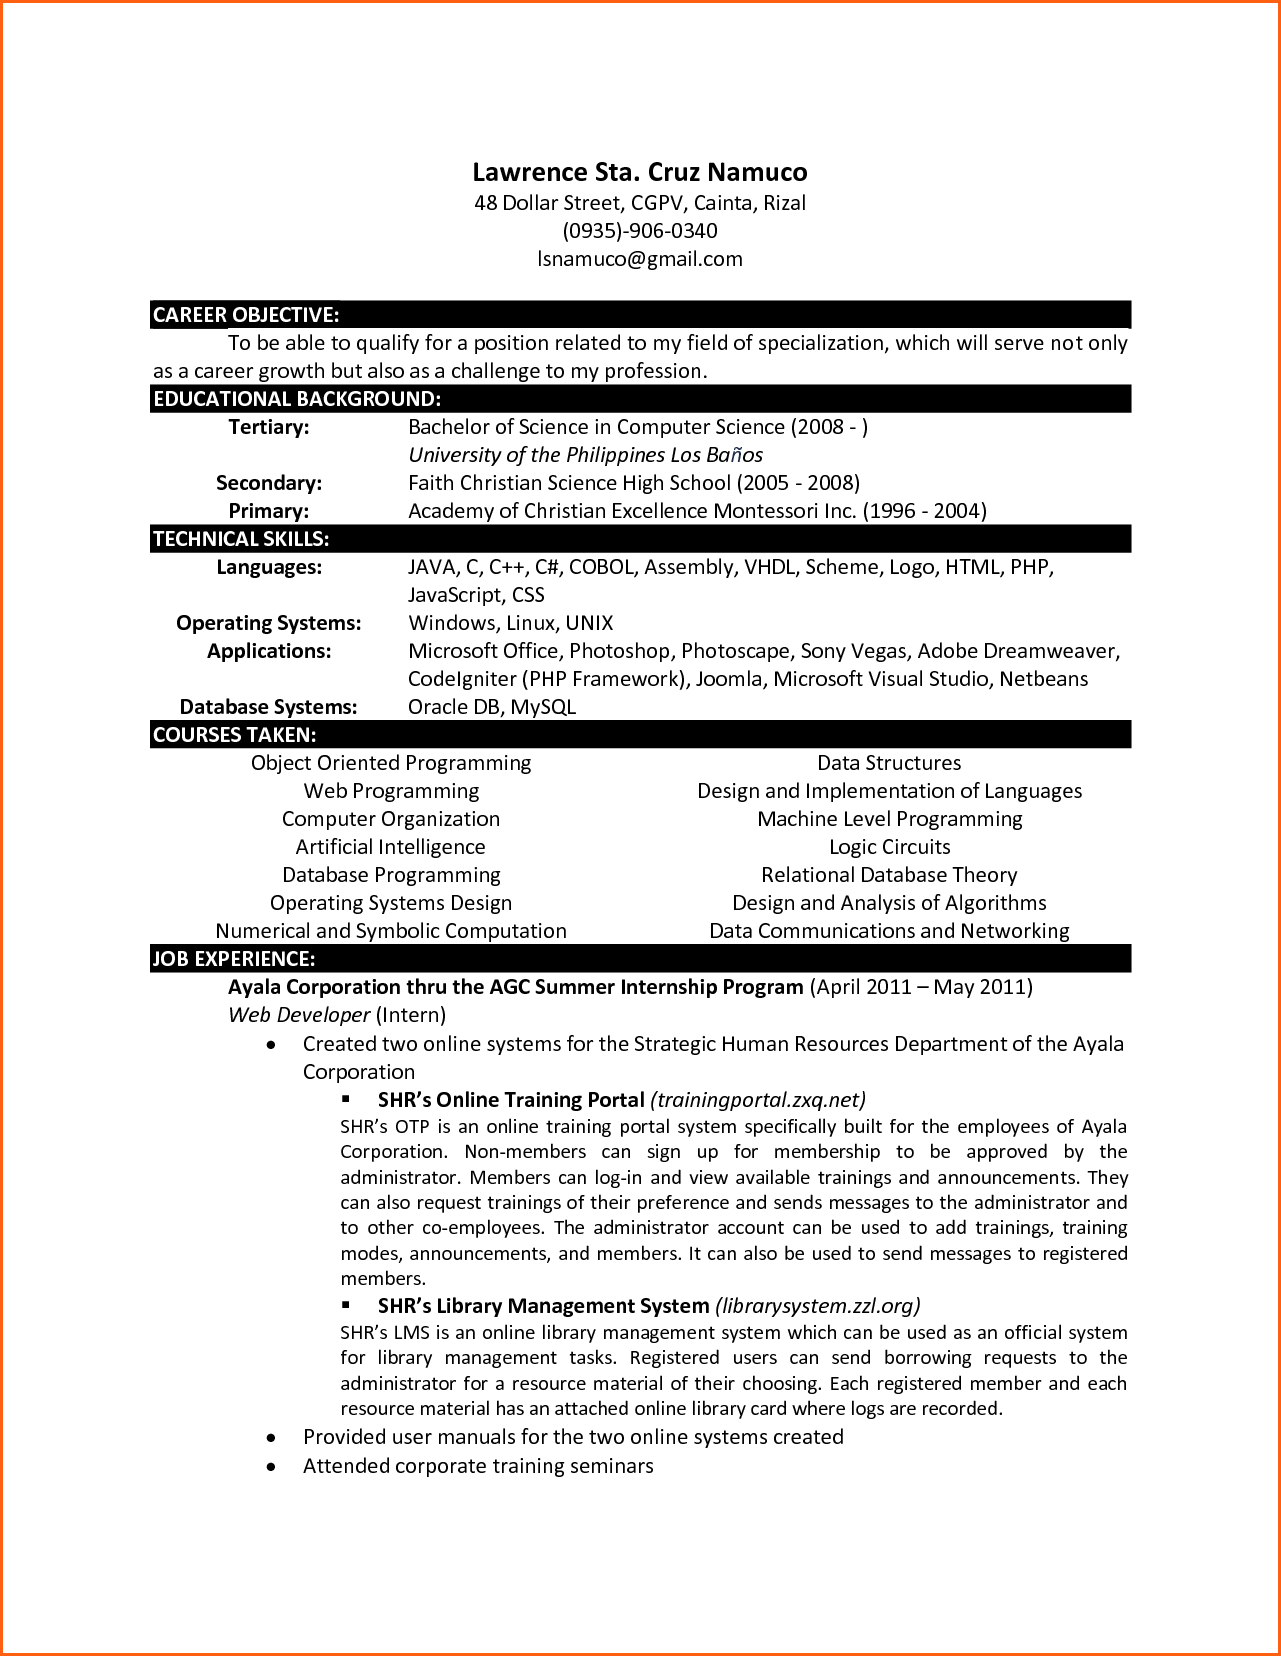 Computer Science Resumes Templates Resume Template Builder Career Center  Natural Sciences Sample  Templates For Resumes